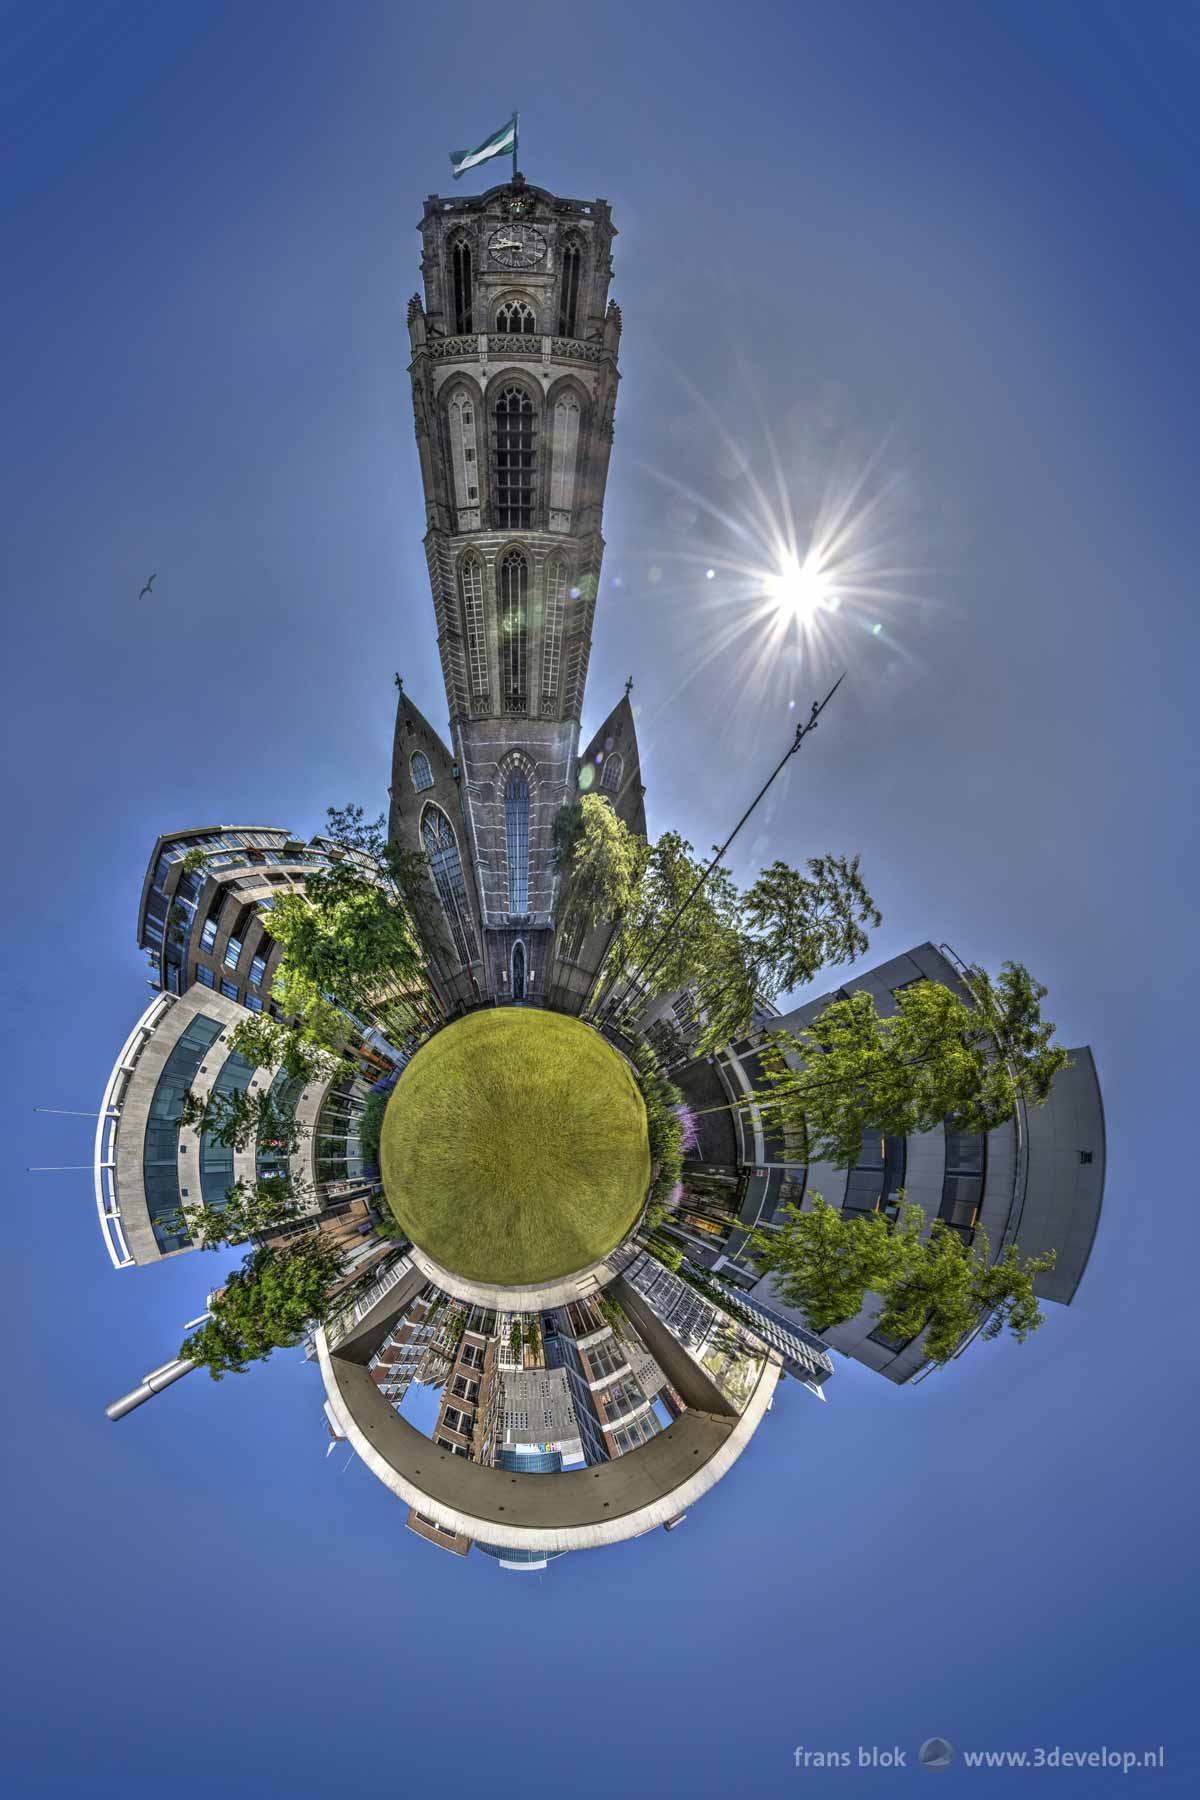 Spherical panoarama, or little planet, made of twelve photographs taken at the lawn in the little park in front of Saint Lwarence's Church in Rotterdam